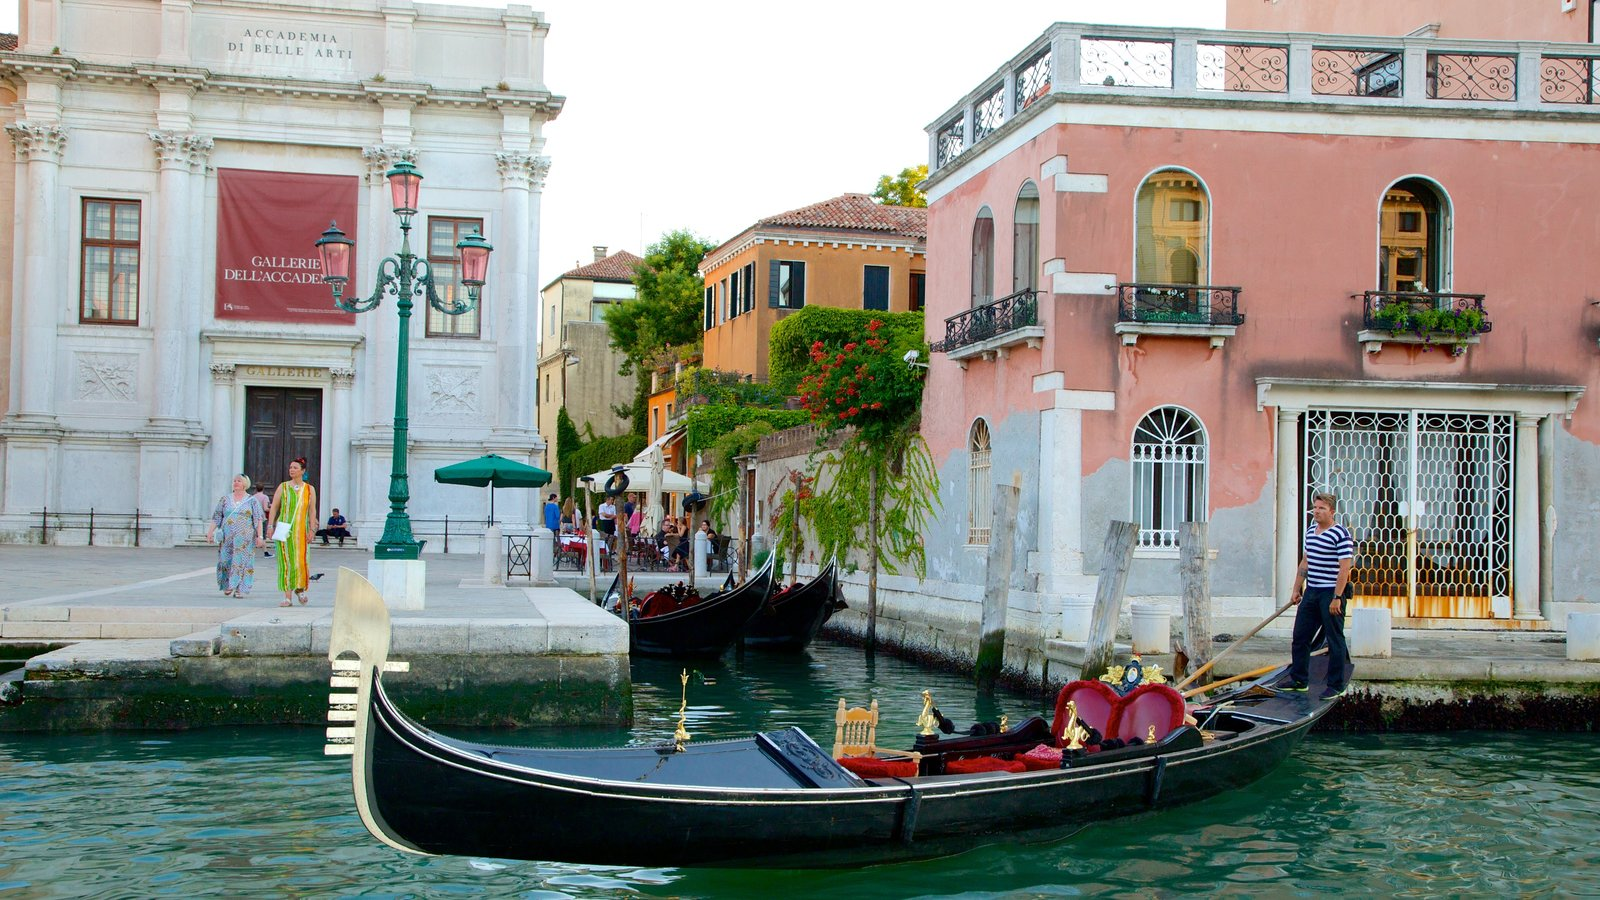 Grand Canal which includes boating and heritage architecture